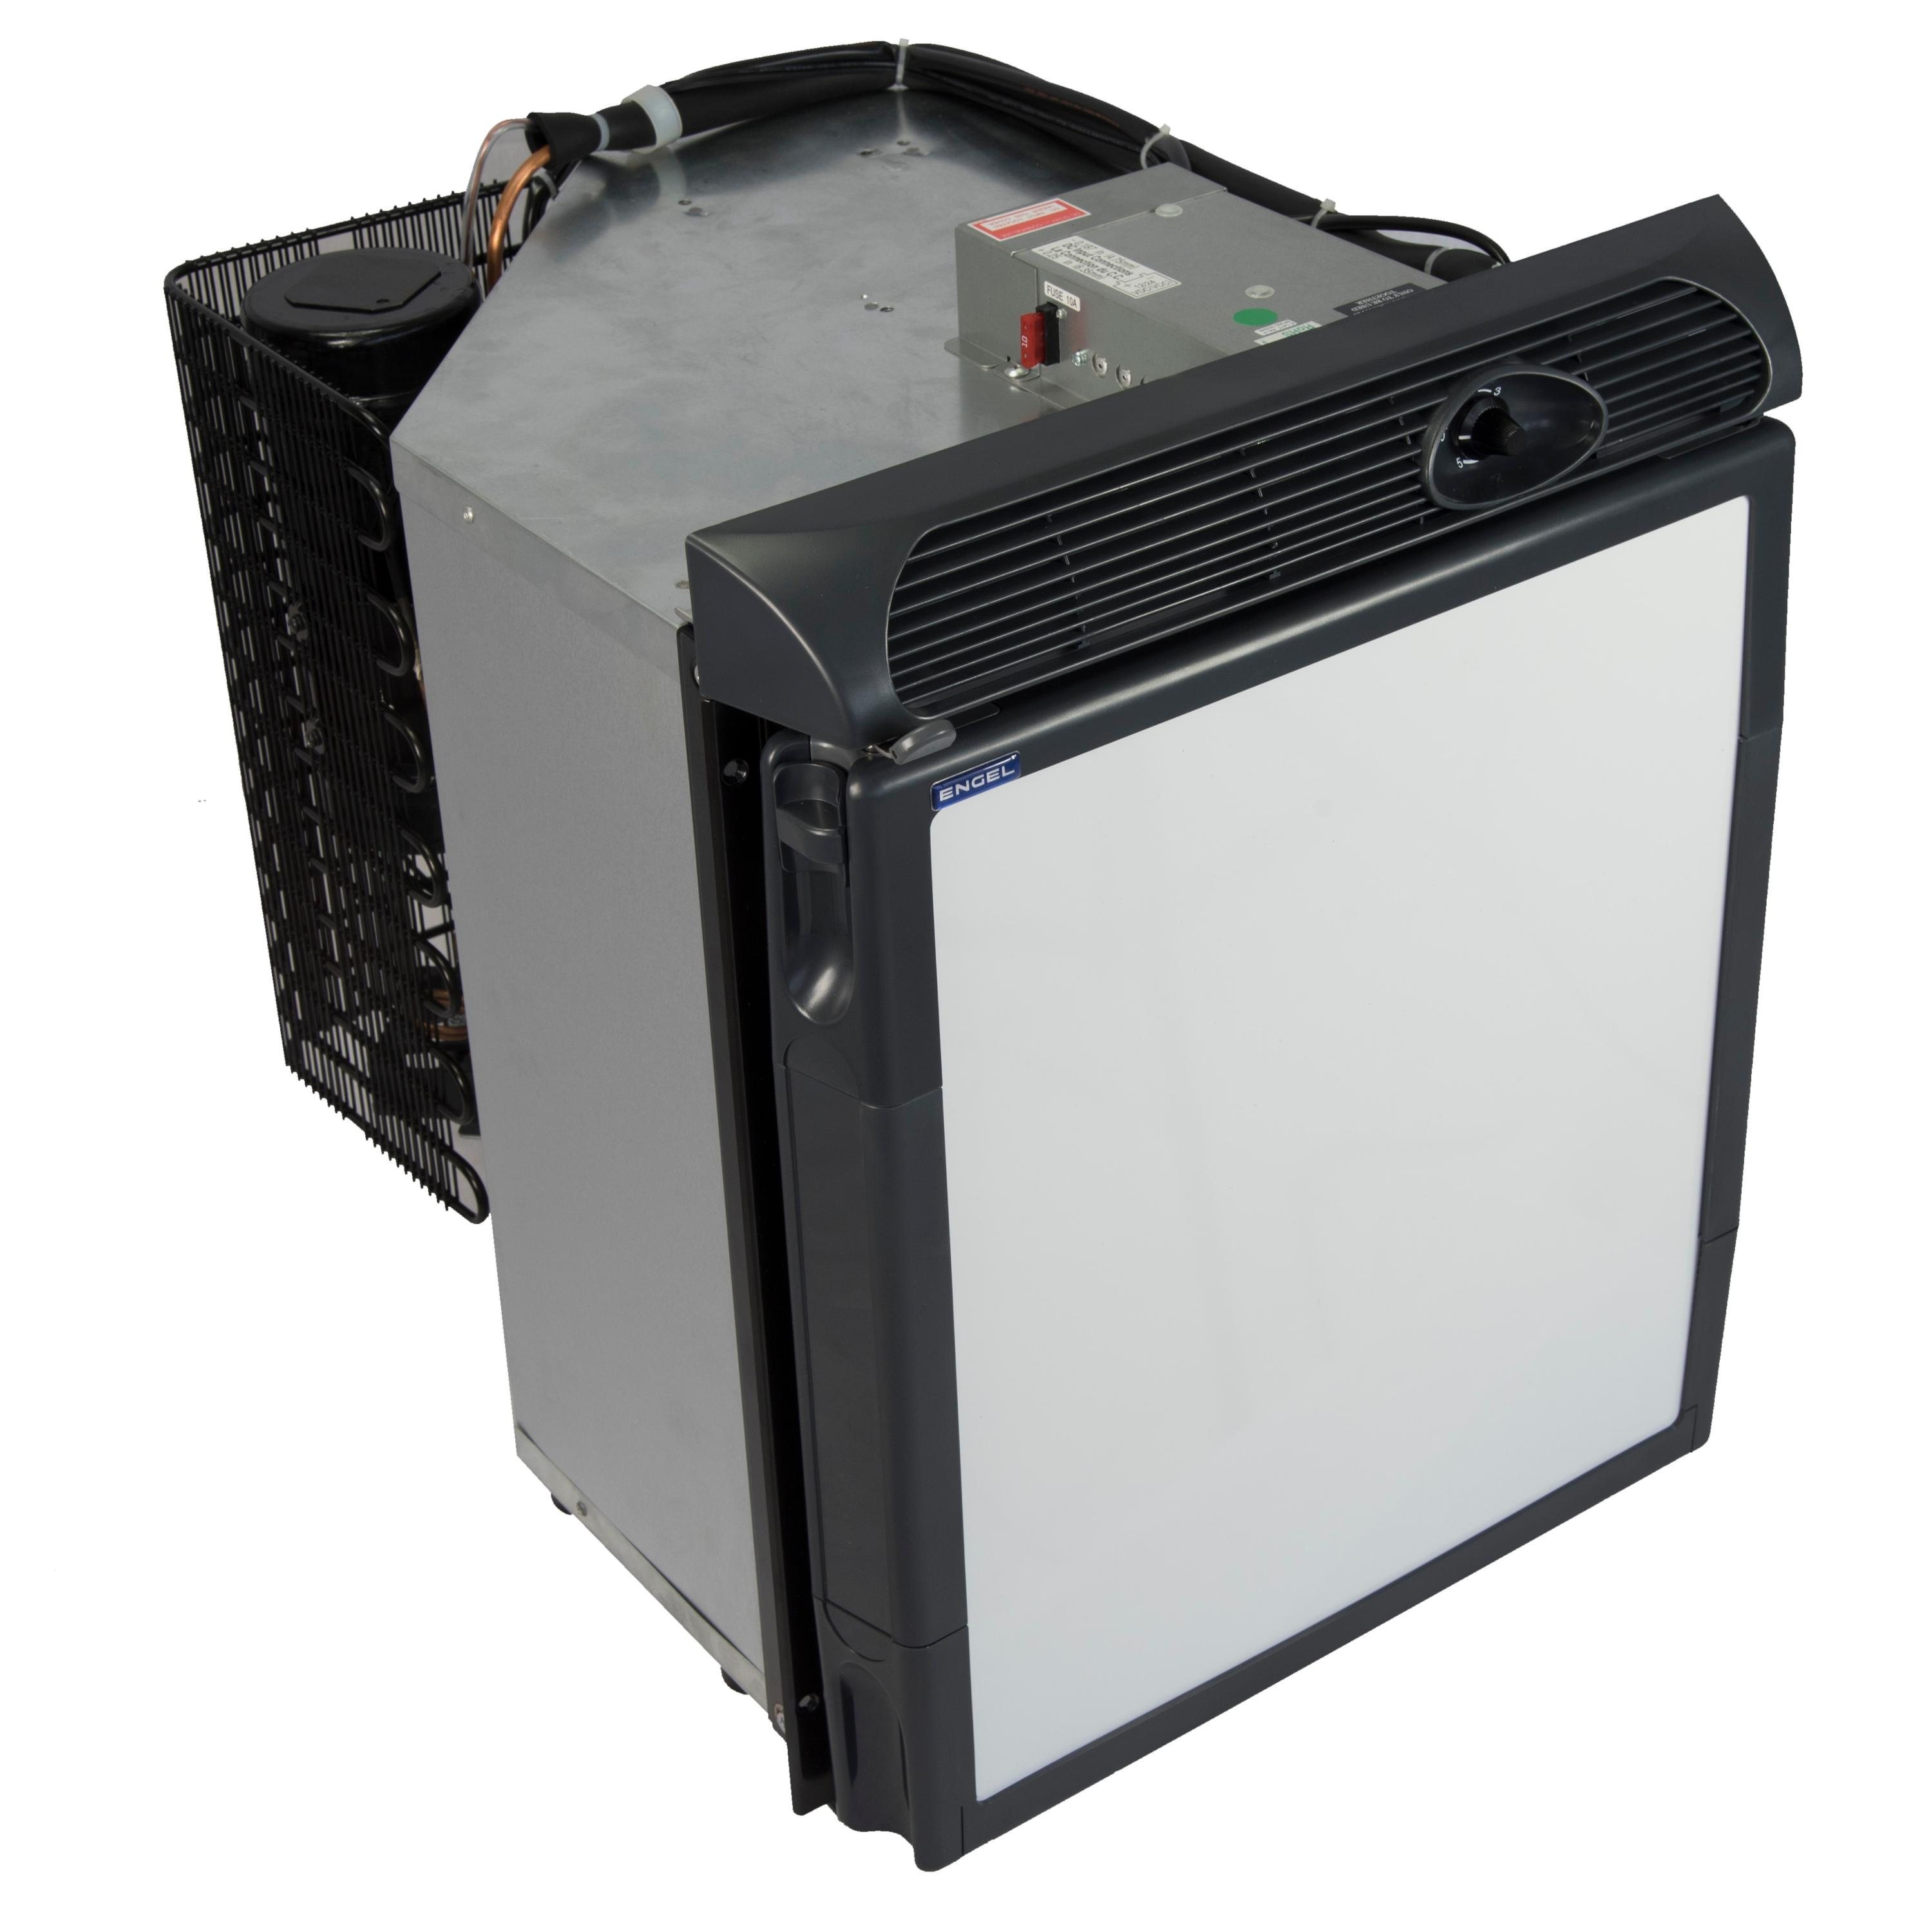 Motor Refrigerator, Refrigerator Motor Price, Low Power Consumption Refrigerator